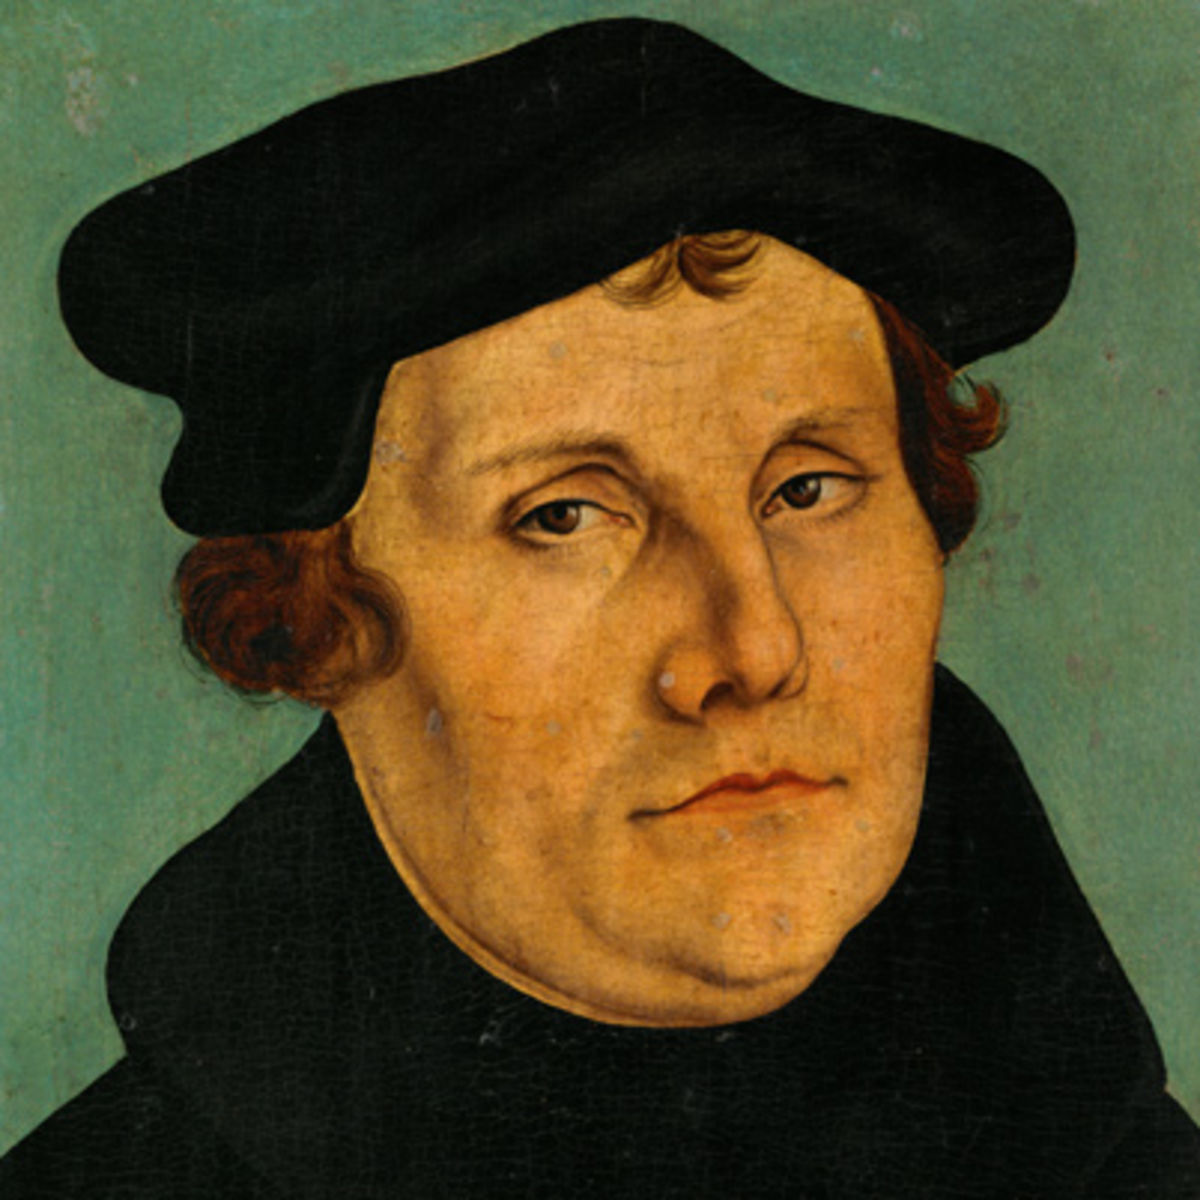 Martin Luther (1483 - 1546) was a German professor of theology, composer, priest, monk and one of the principal voices of the Protestant Reformation. Learn More...